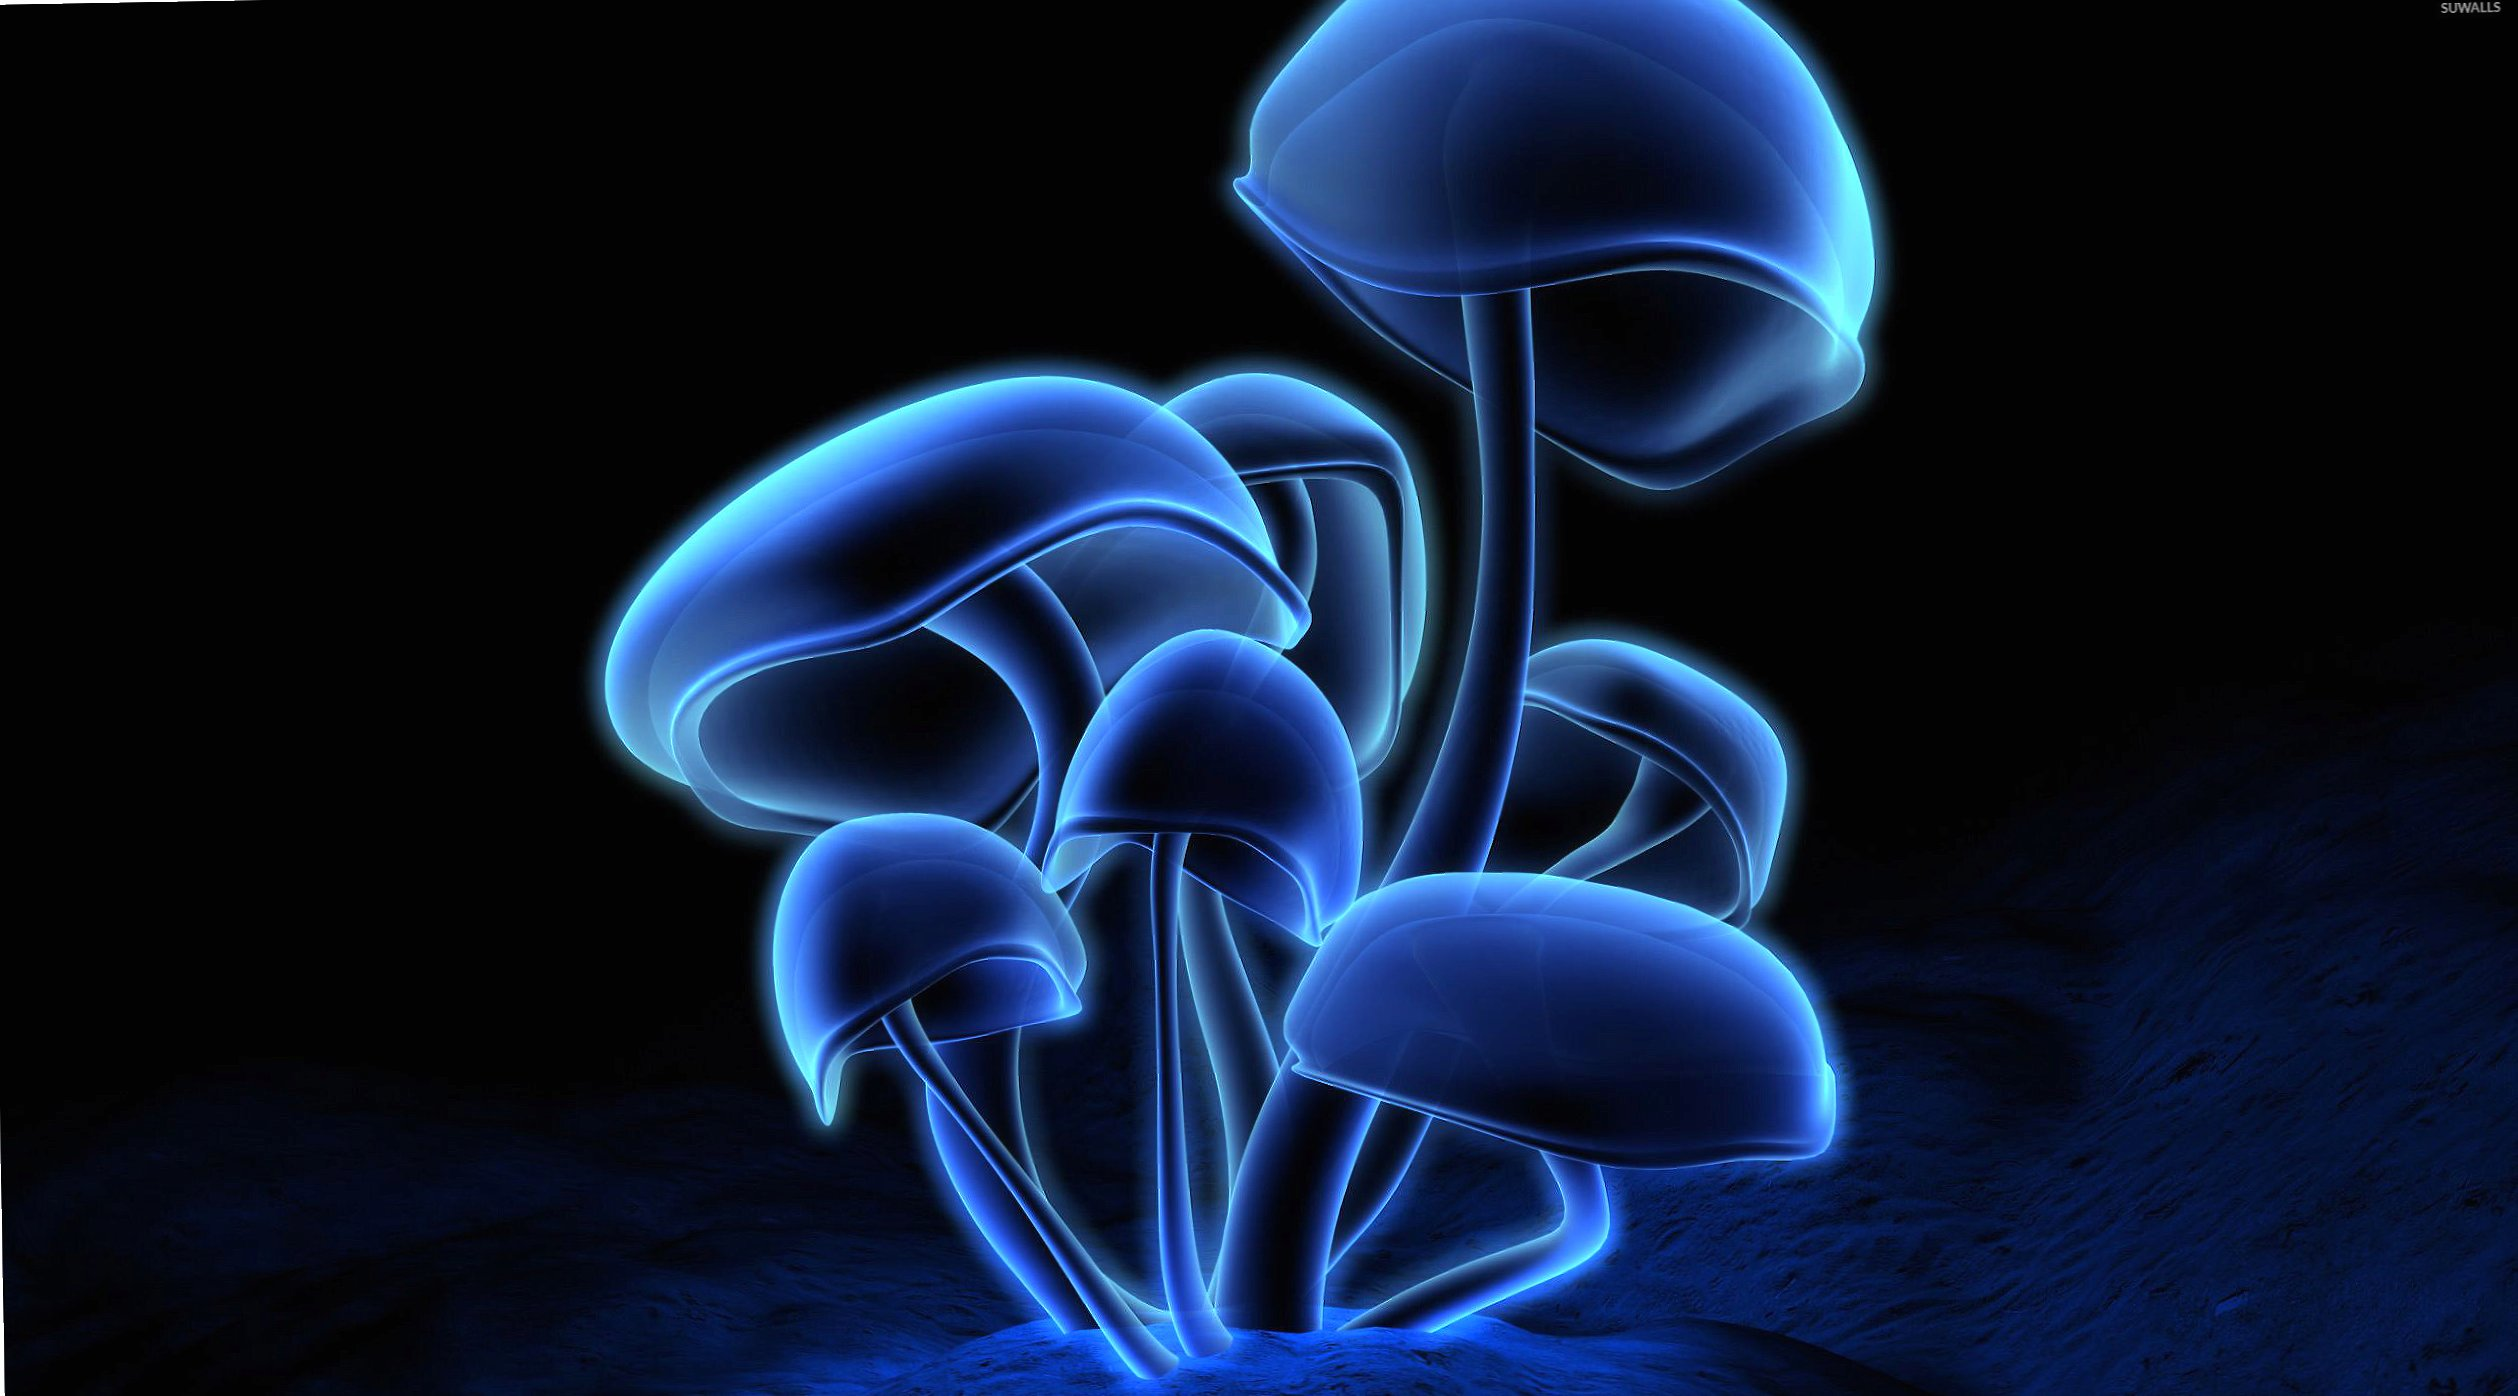 Neon mushrooms wallpapers HD quality